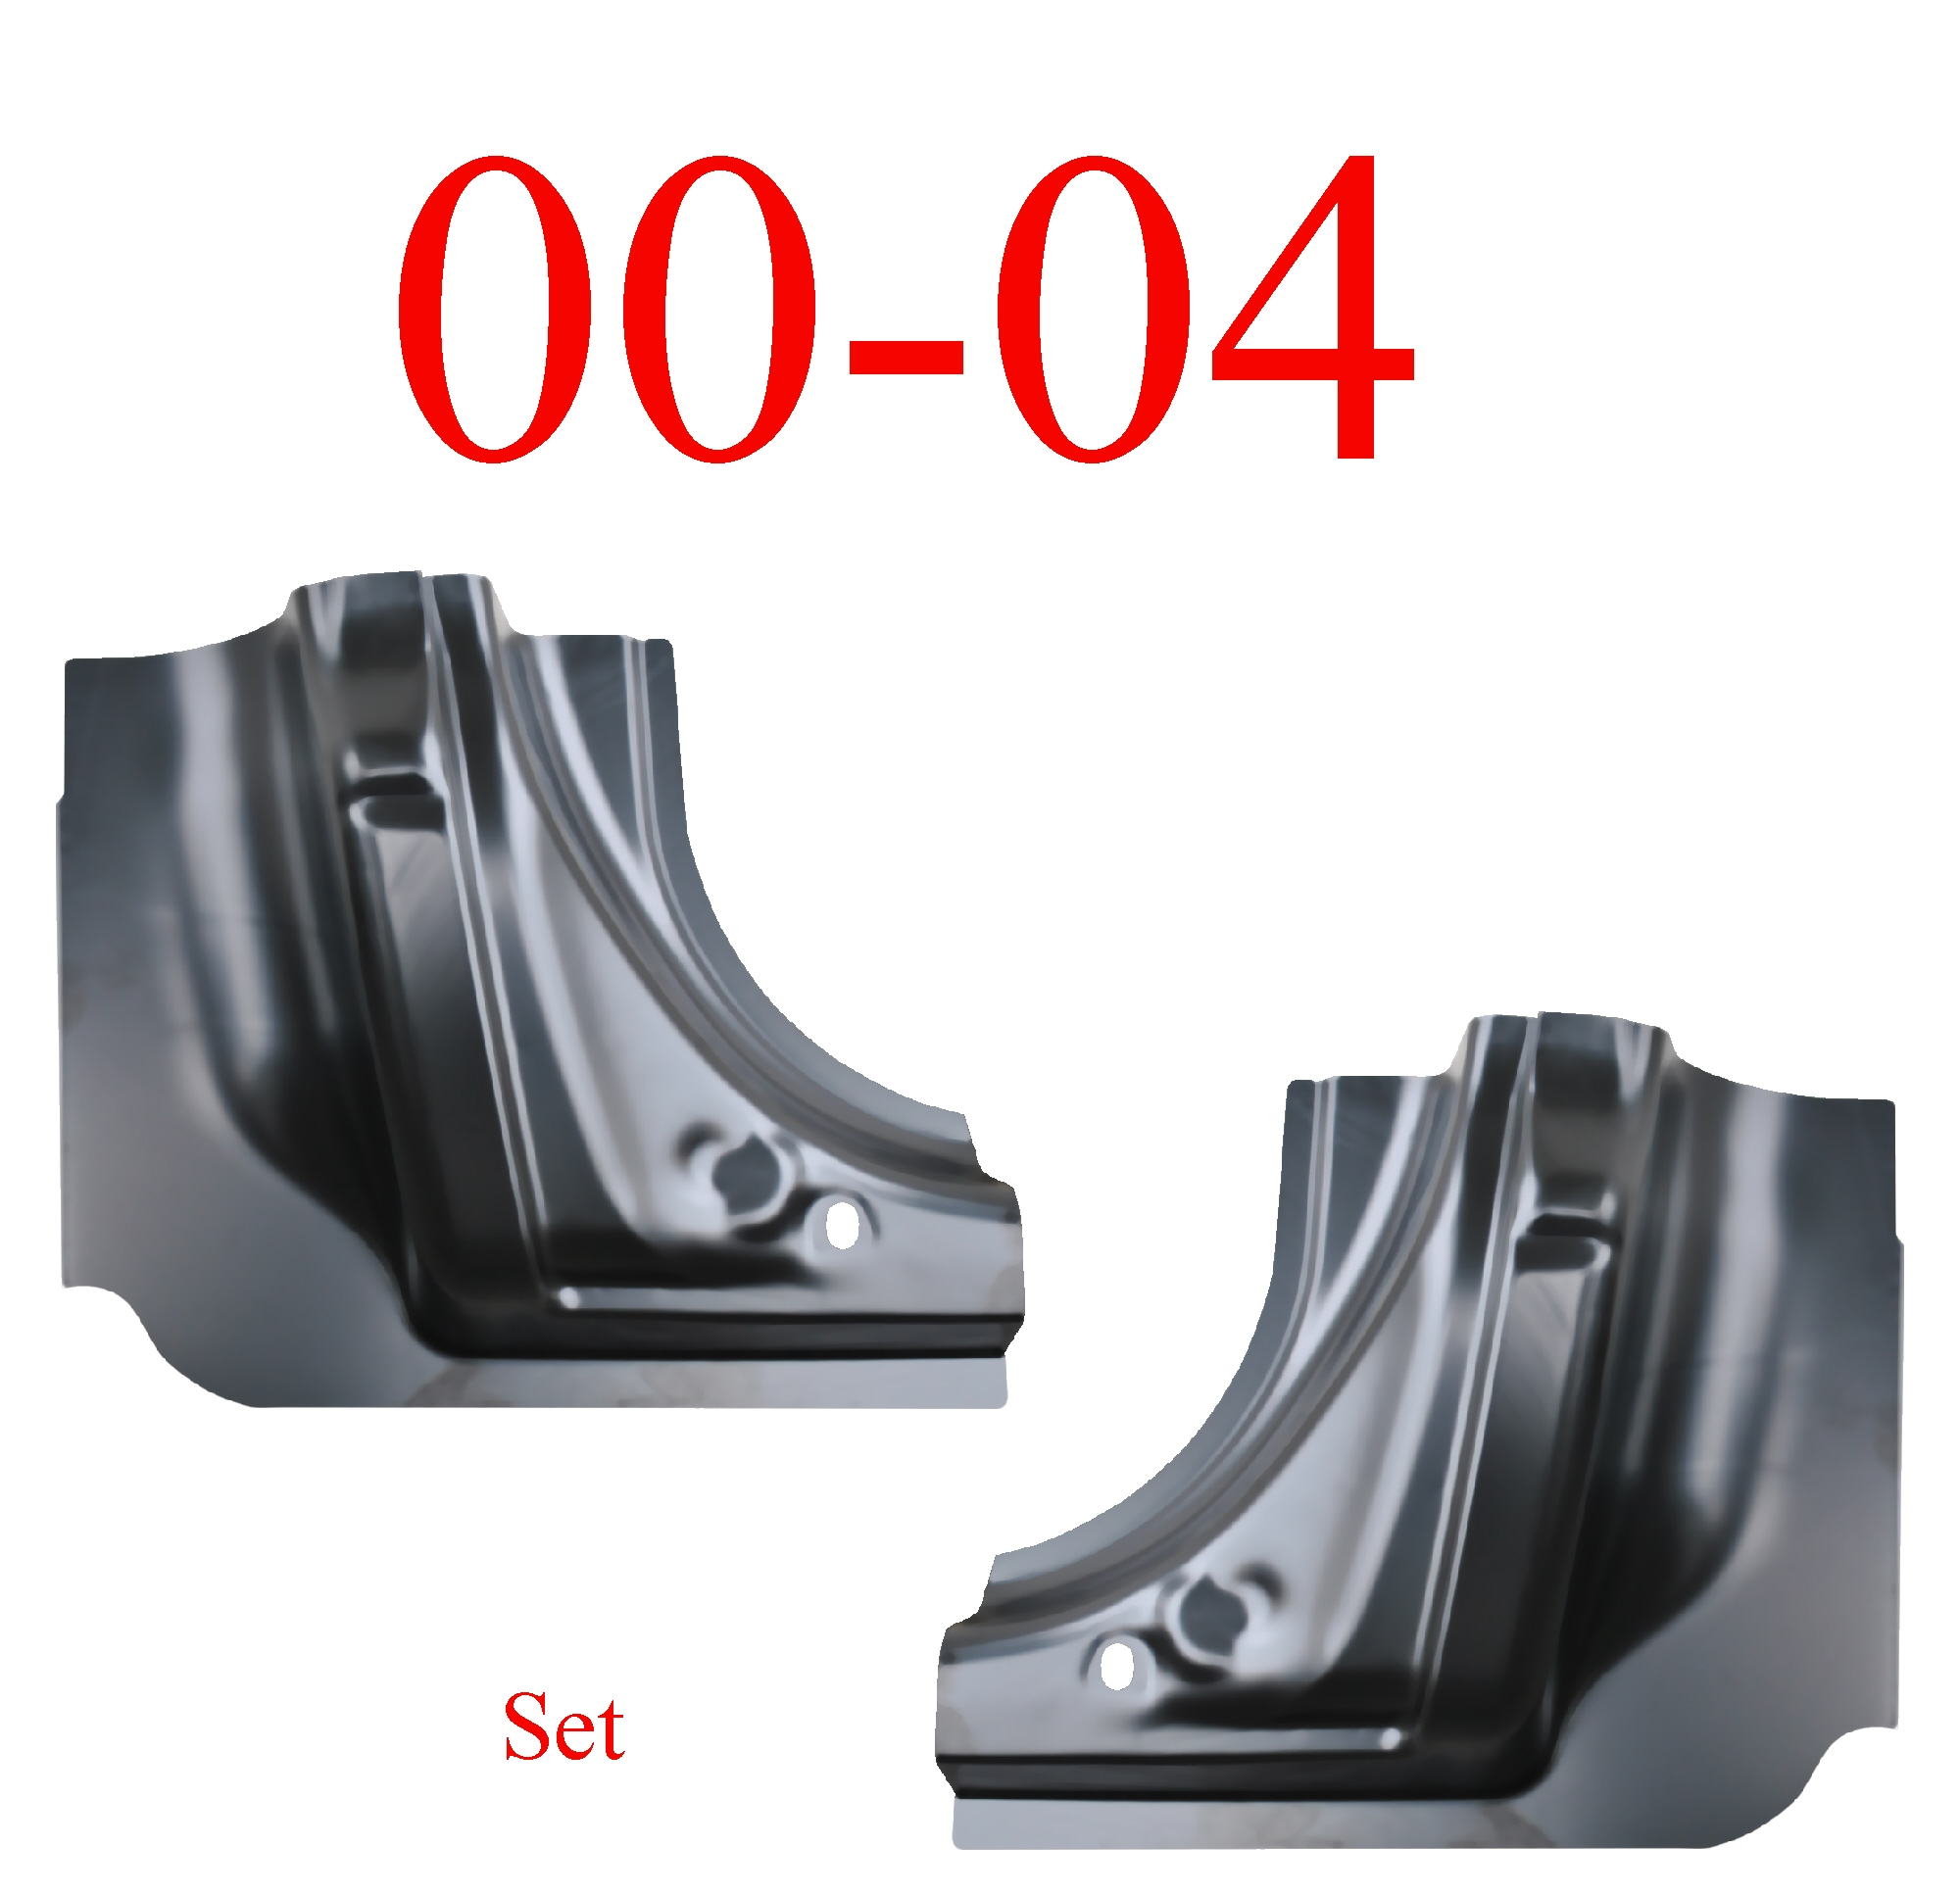 00-04 Dodge Dakota Quad Cab Corner Set